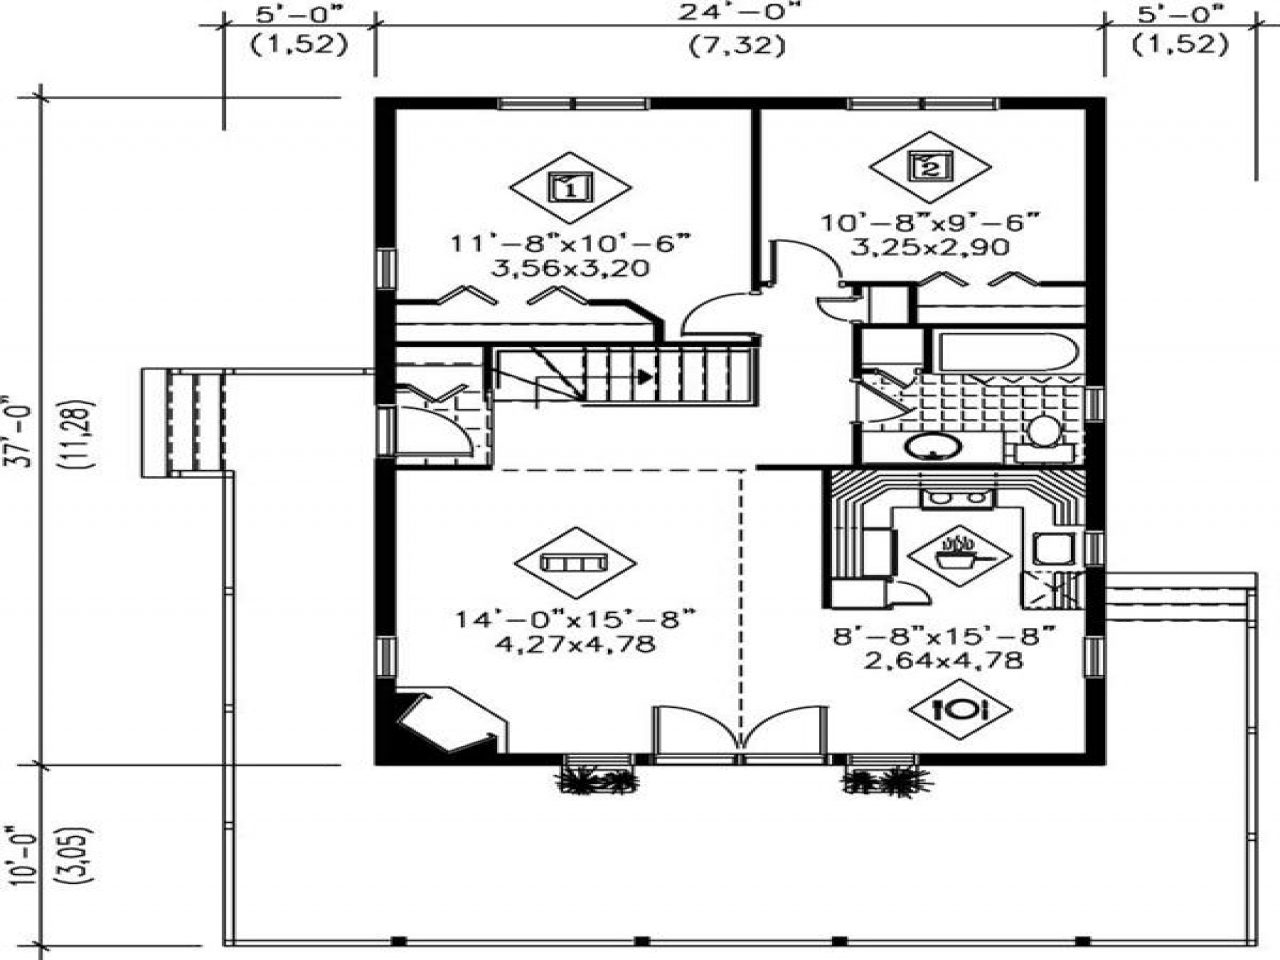 Beachfront homes floor plans water floor plans beachfront for Beachfront home plans